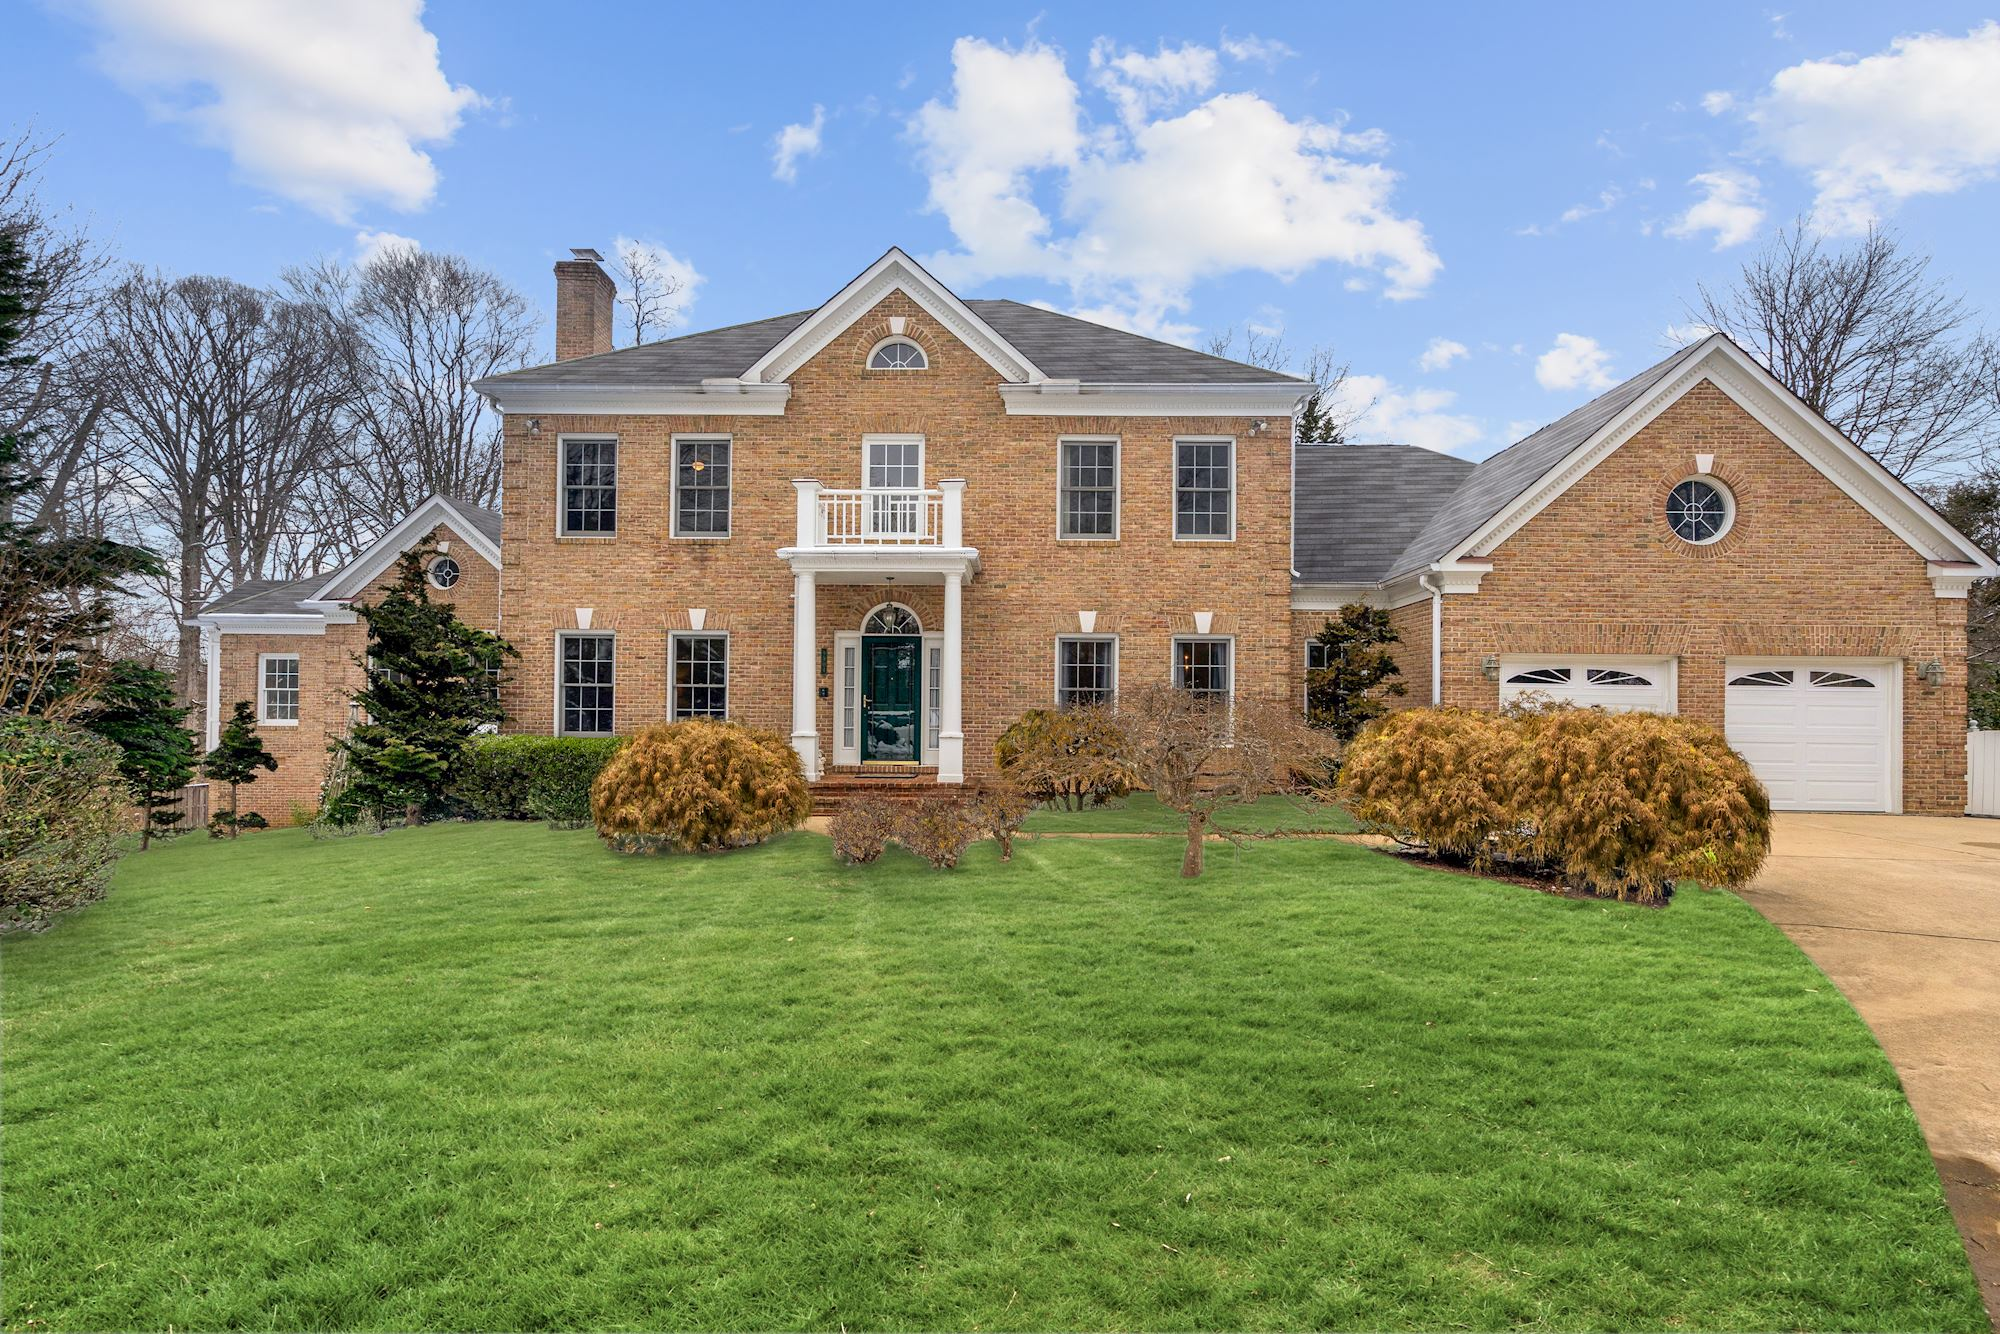 SOLD: Custom Colonial Home With Almost 7000 sqft in Community of Vienna Glen